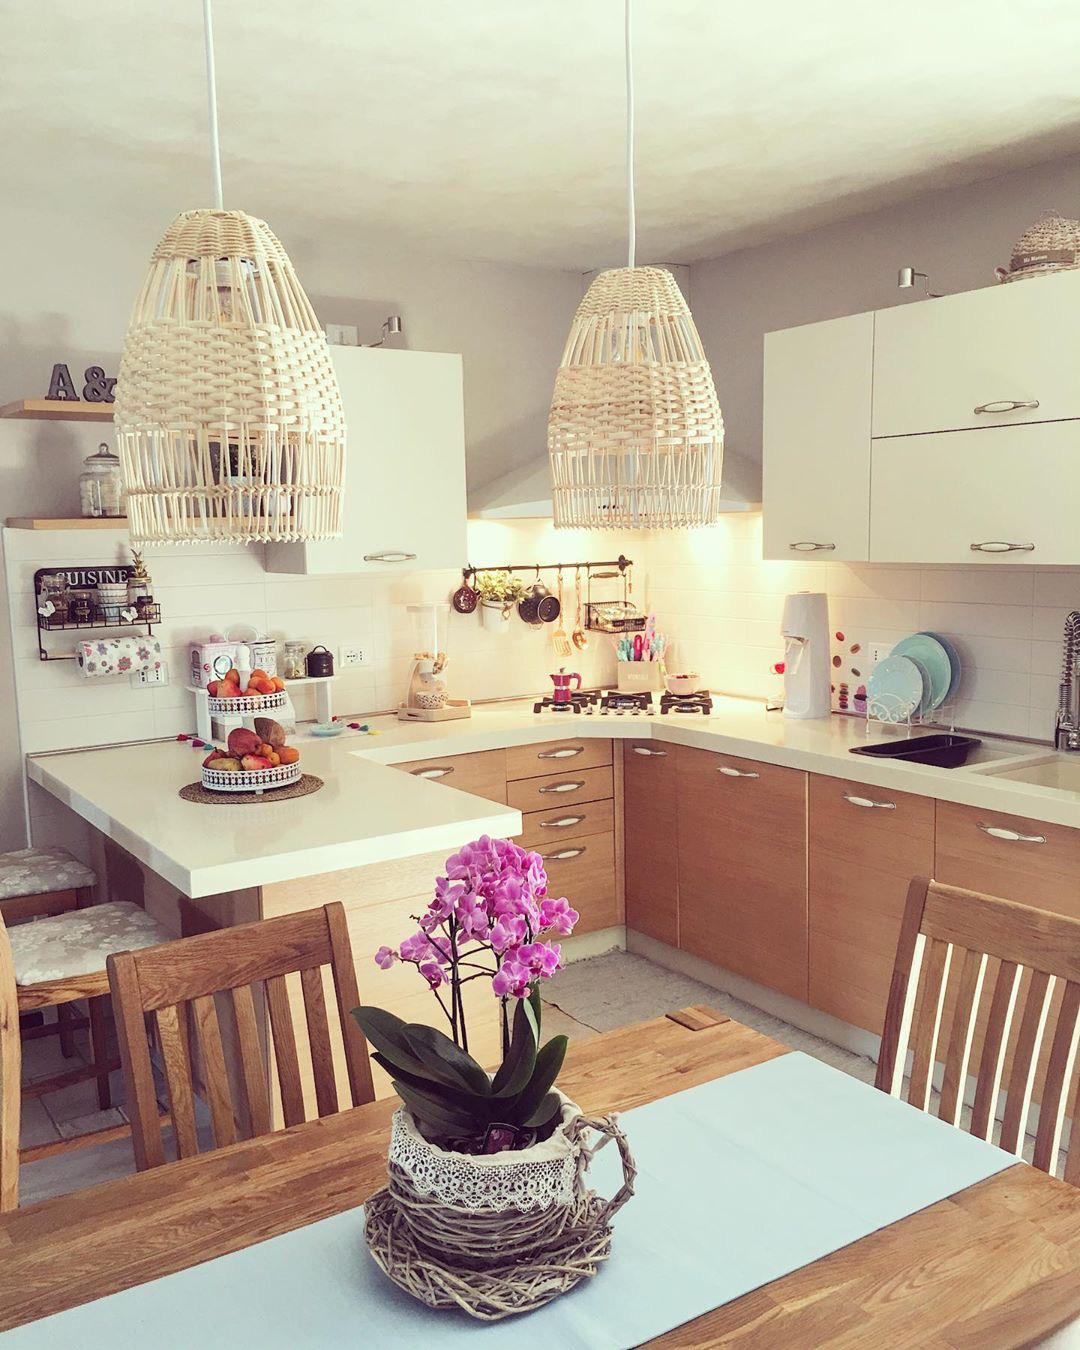 Inspiring Kitchen Design Ideas For Your Home - Page 17 of 35 - Liatsy Fashion